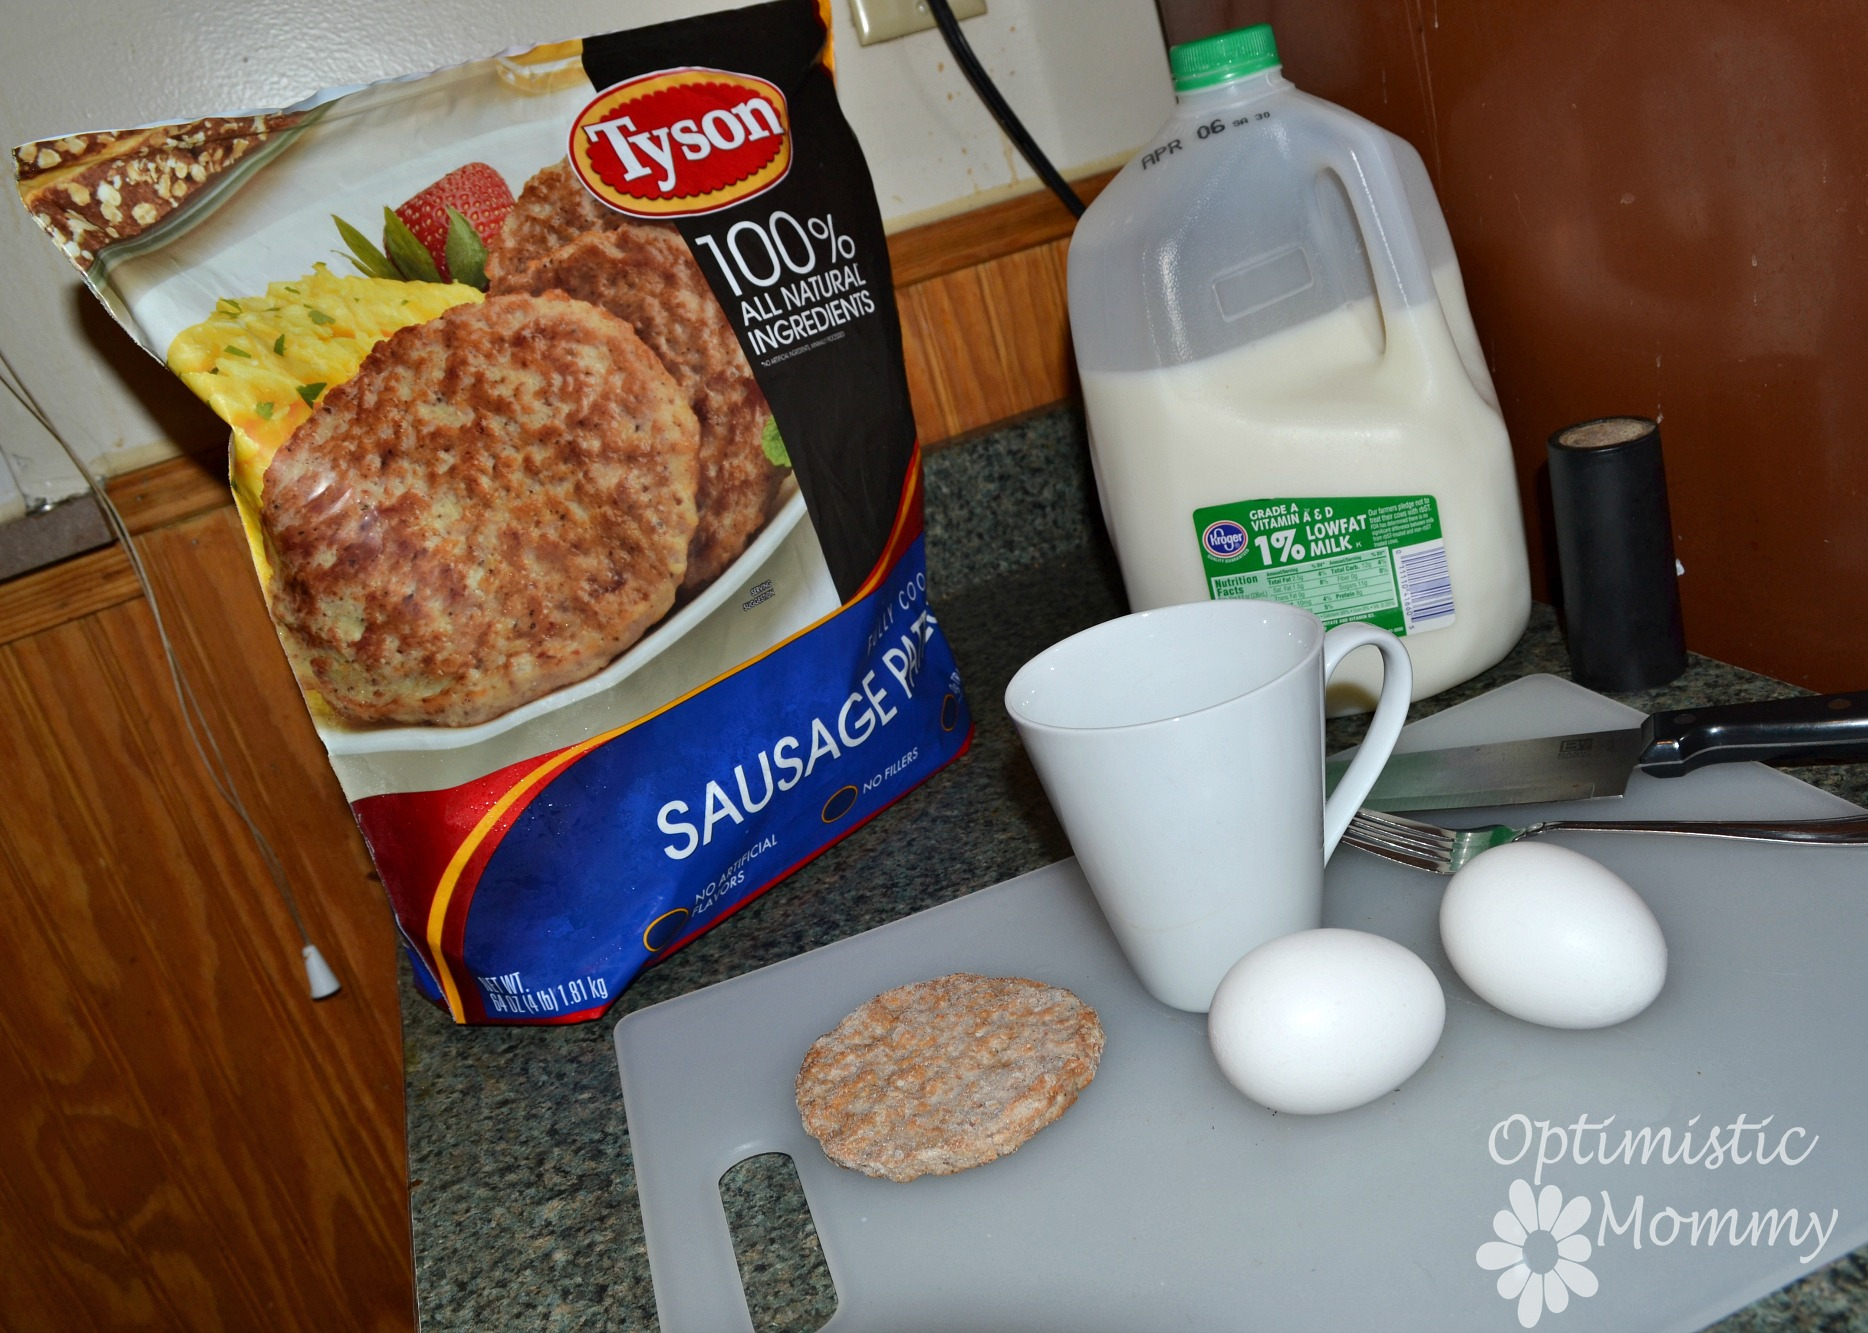 Super Simple Egg and Sausage Mug with Tyson Fully Cooked Sausage Recipe Prep #DoItAllMom #cbias